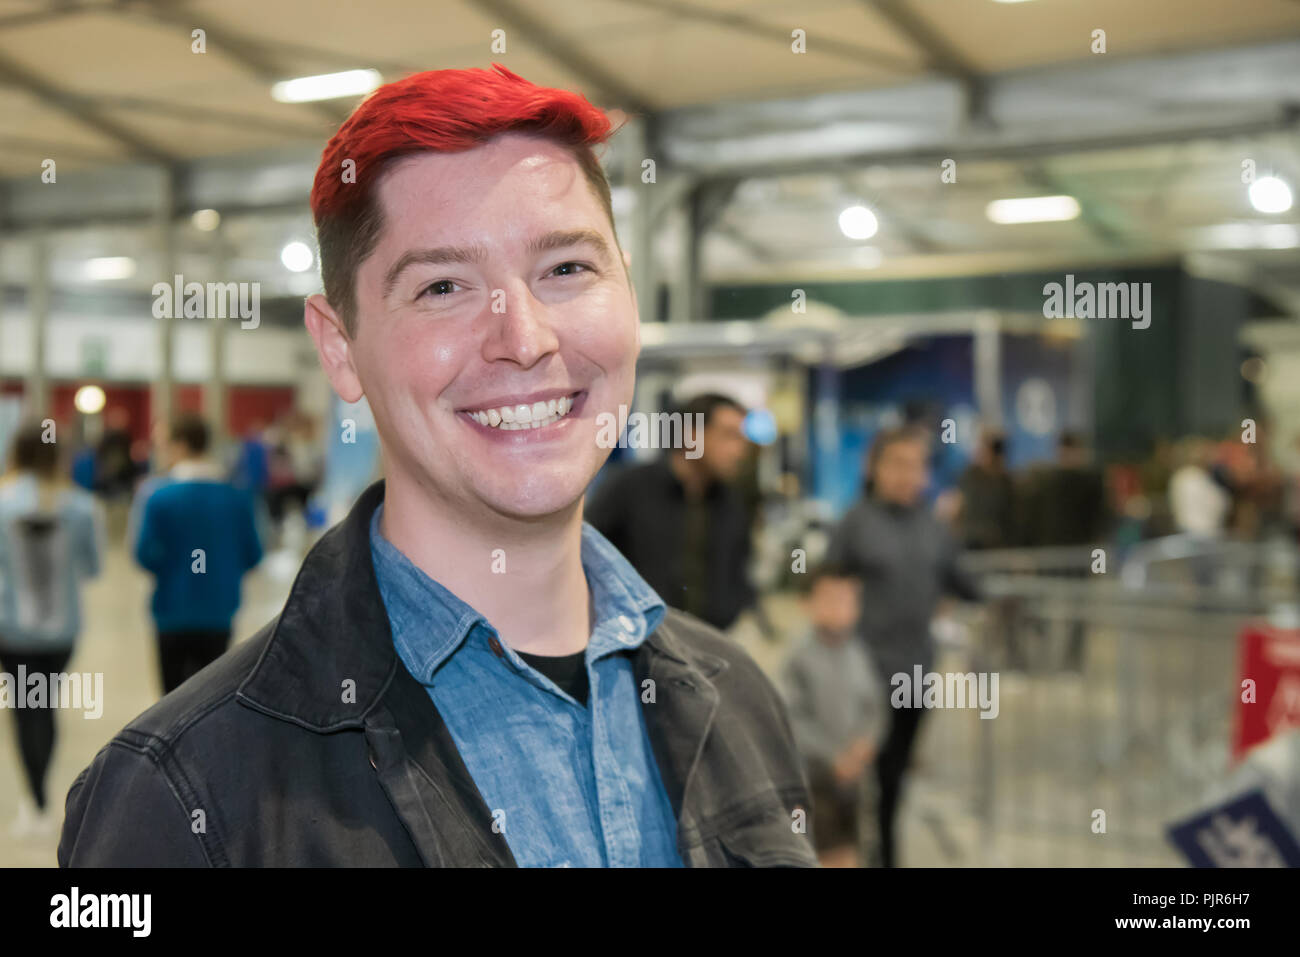 Lisburn, Northern Ireland. 08/09/2018 - Chad Ryan Johnson (OMGChad), a video blogger who hosts the Minecraft Vlog OMGCraft and the weekly video podcast Giz Wiz, with his characteristic red hair attends a Minecraft conference in Northern Ireland - Stock Image